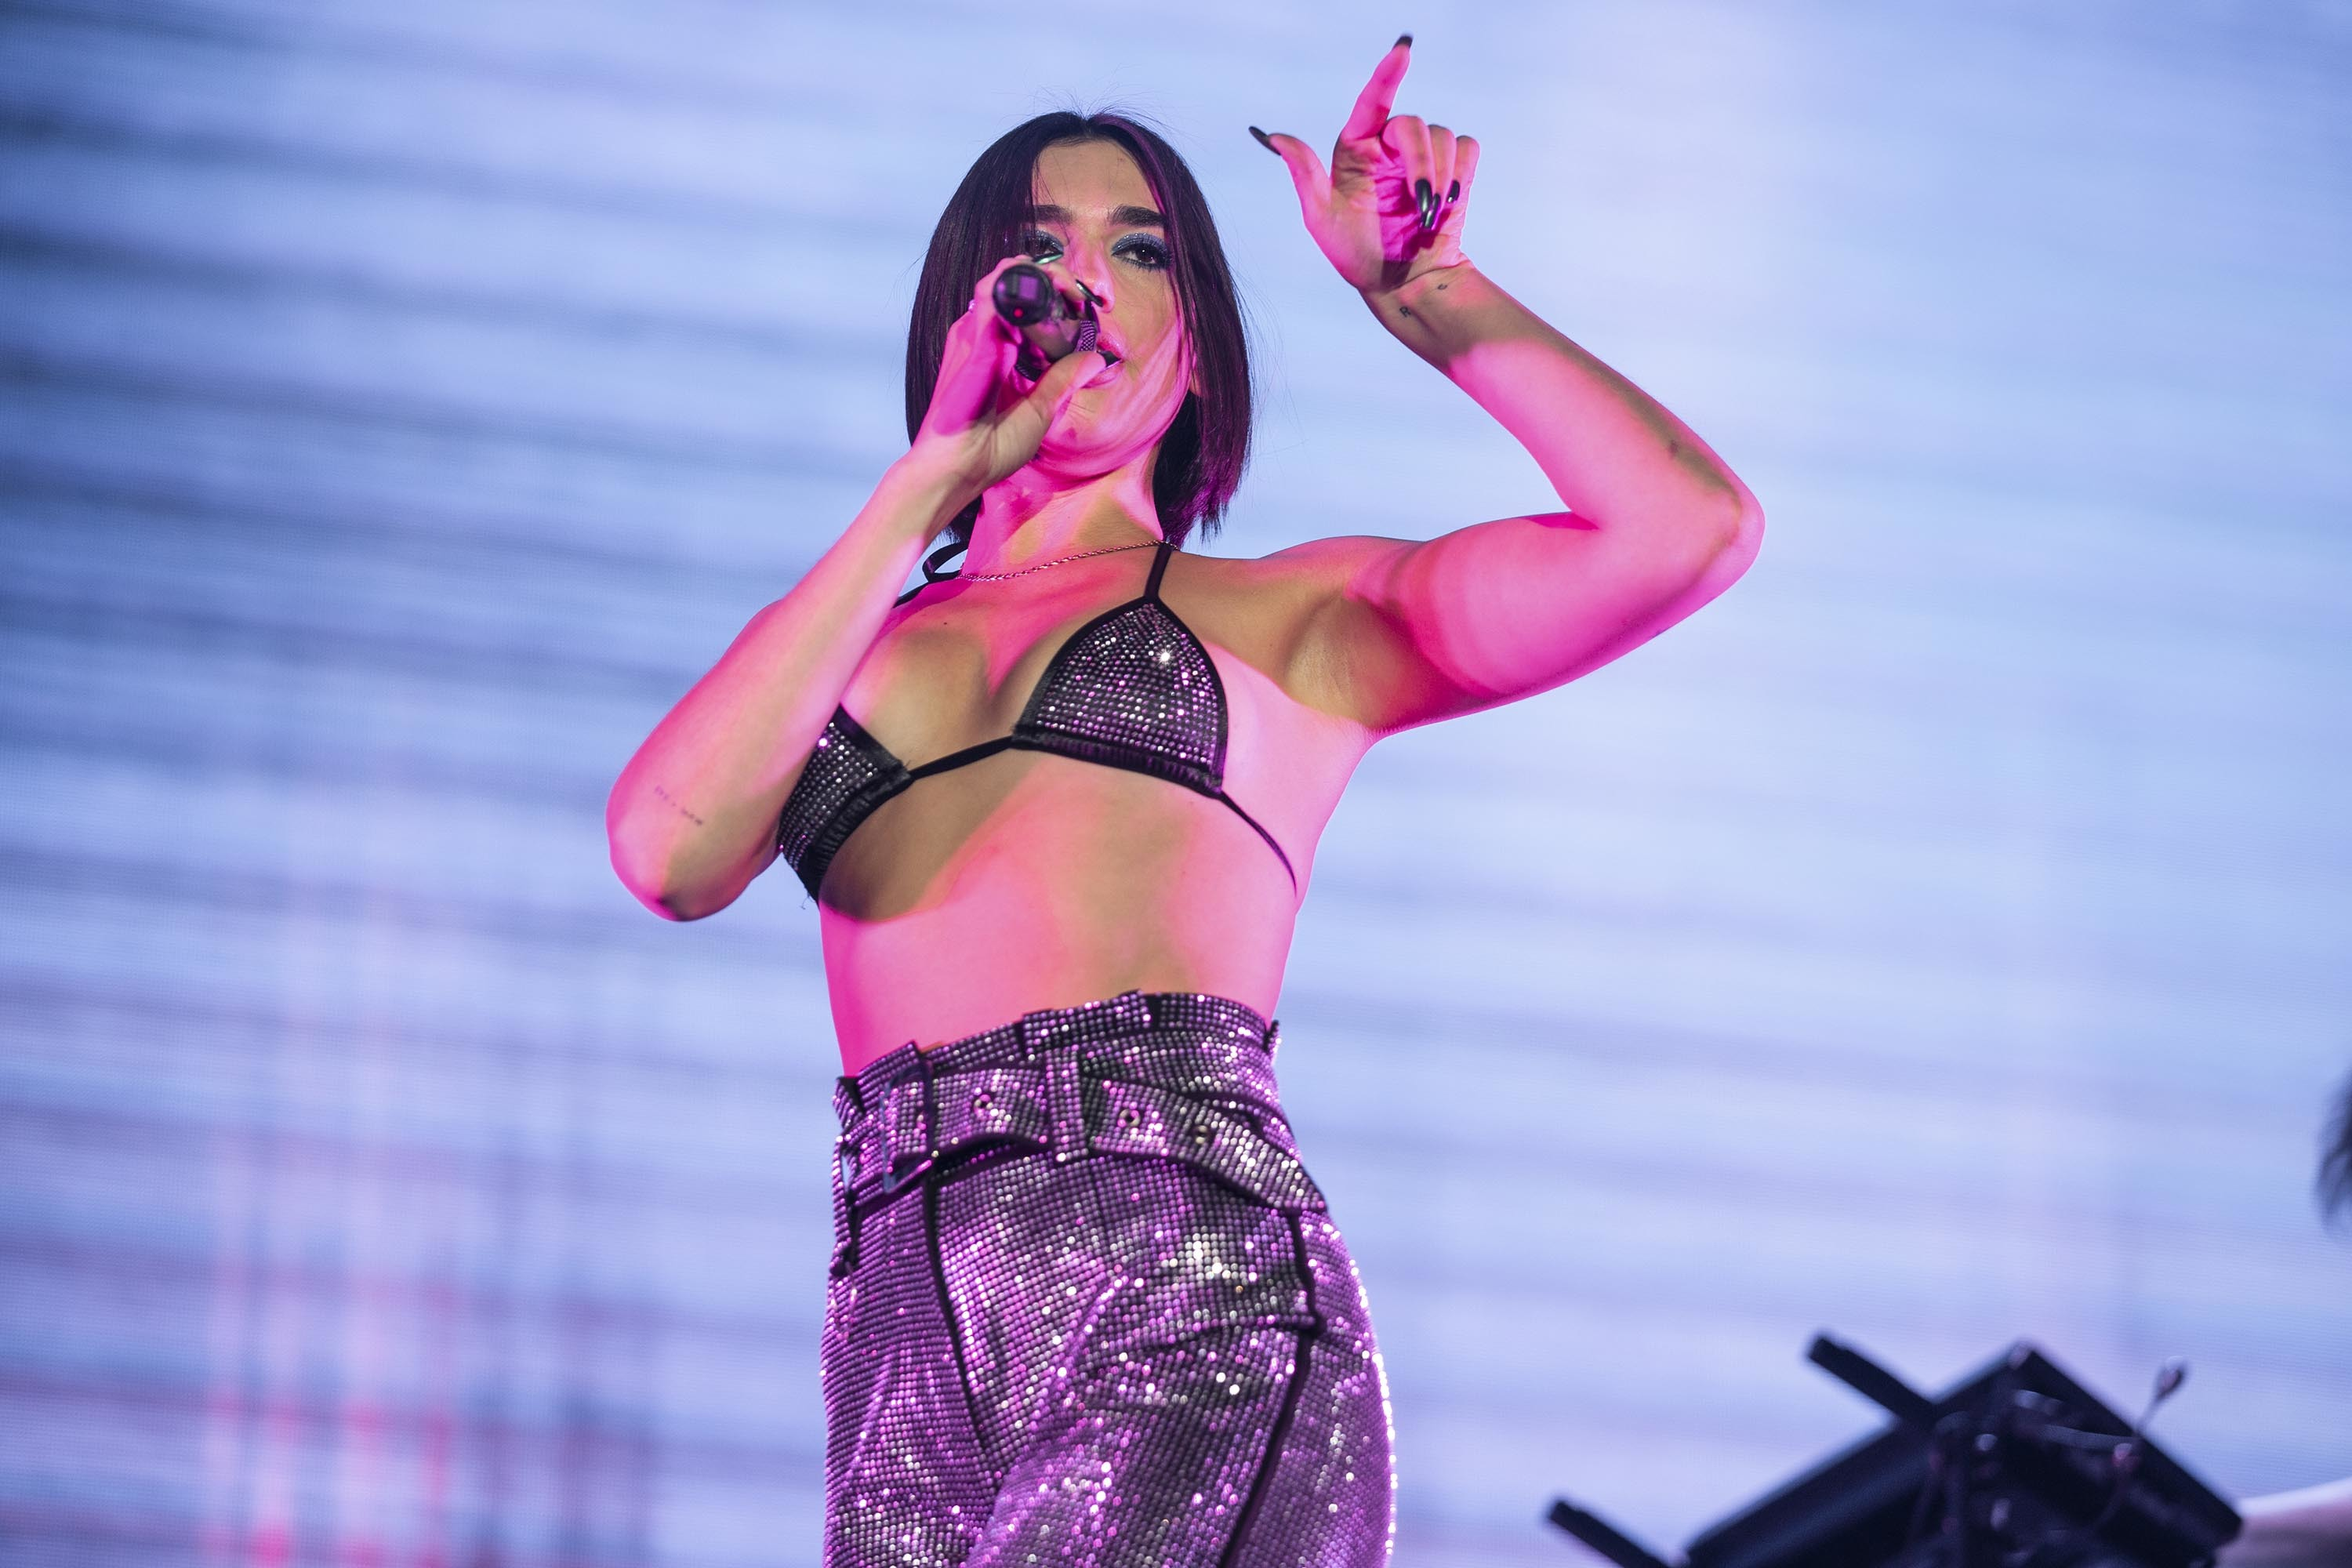 Dua Lipa returns with empowerment bop 'Don't Start Now'